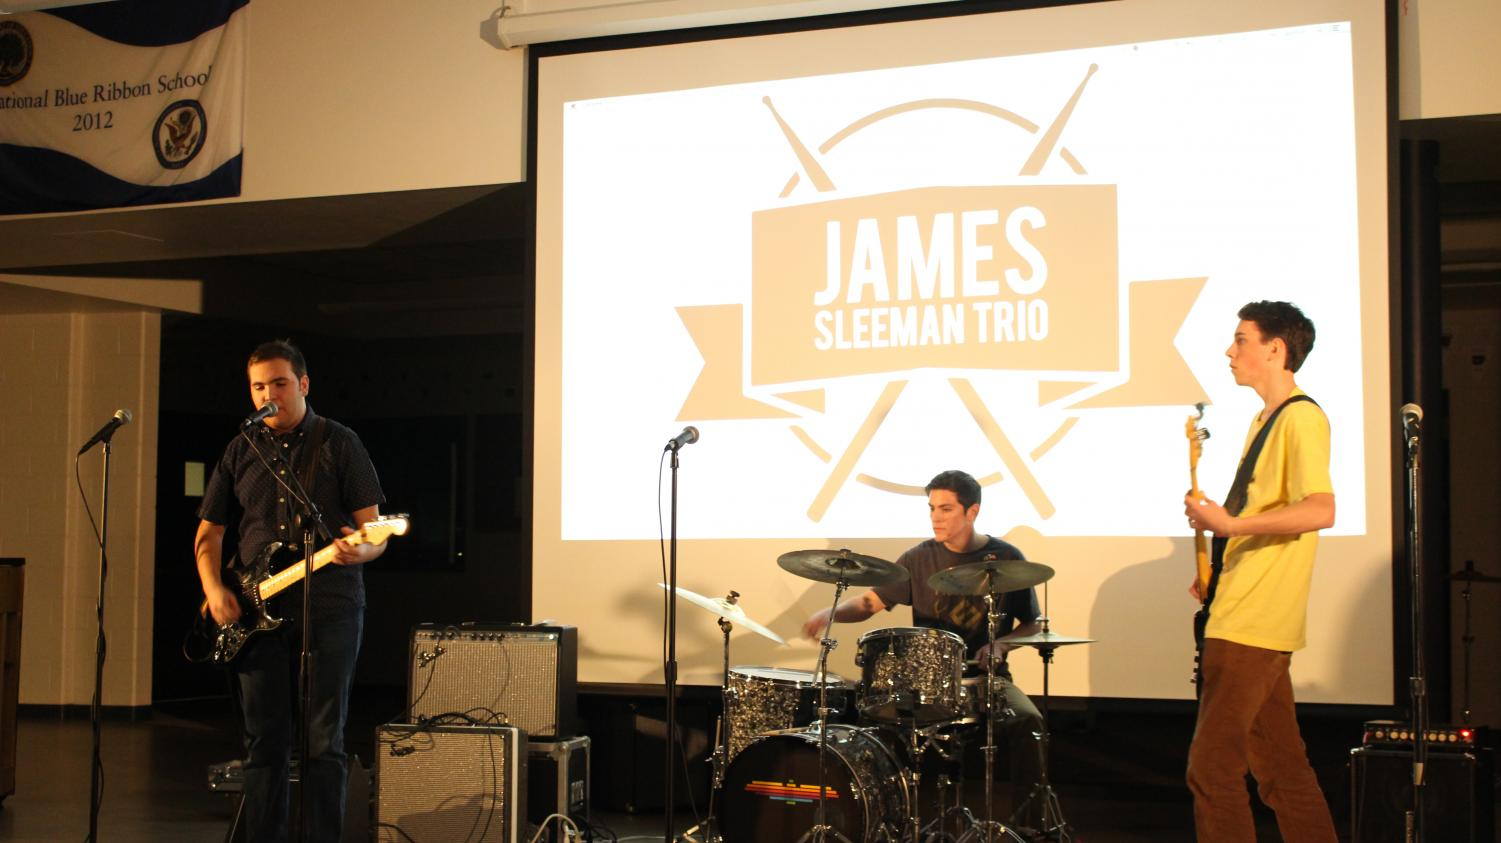 The James Sleeman Trio won the event and High Steaks won the Fan Favorite vote.